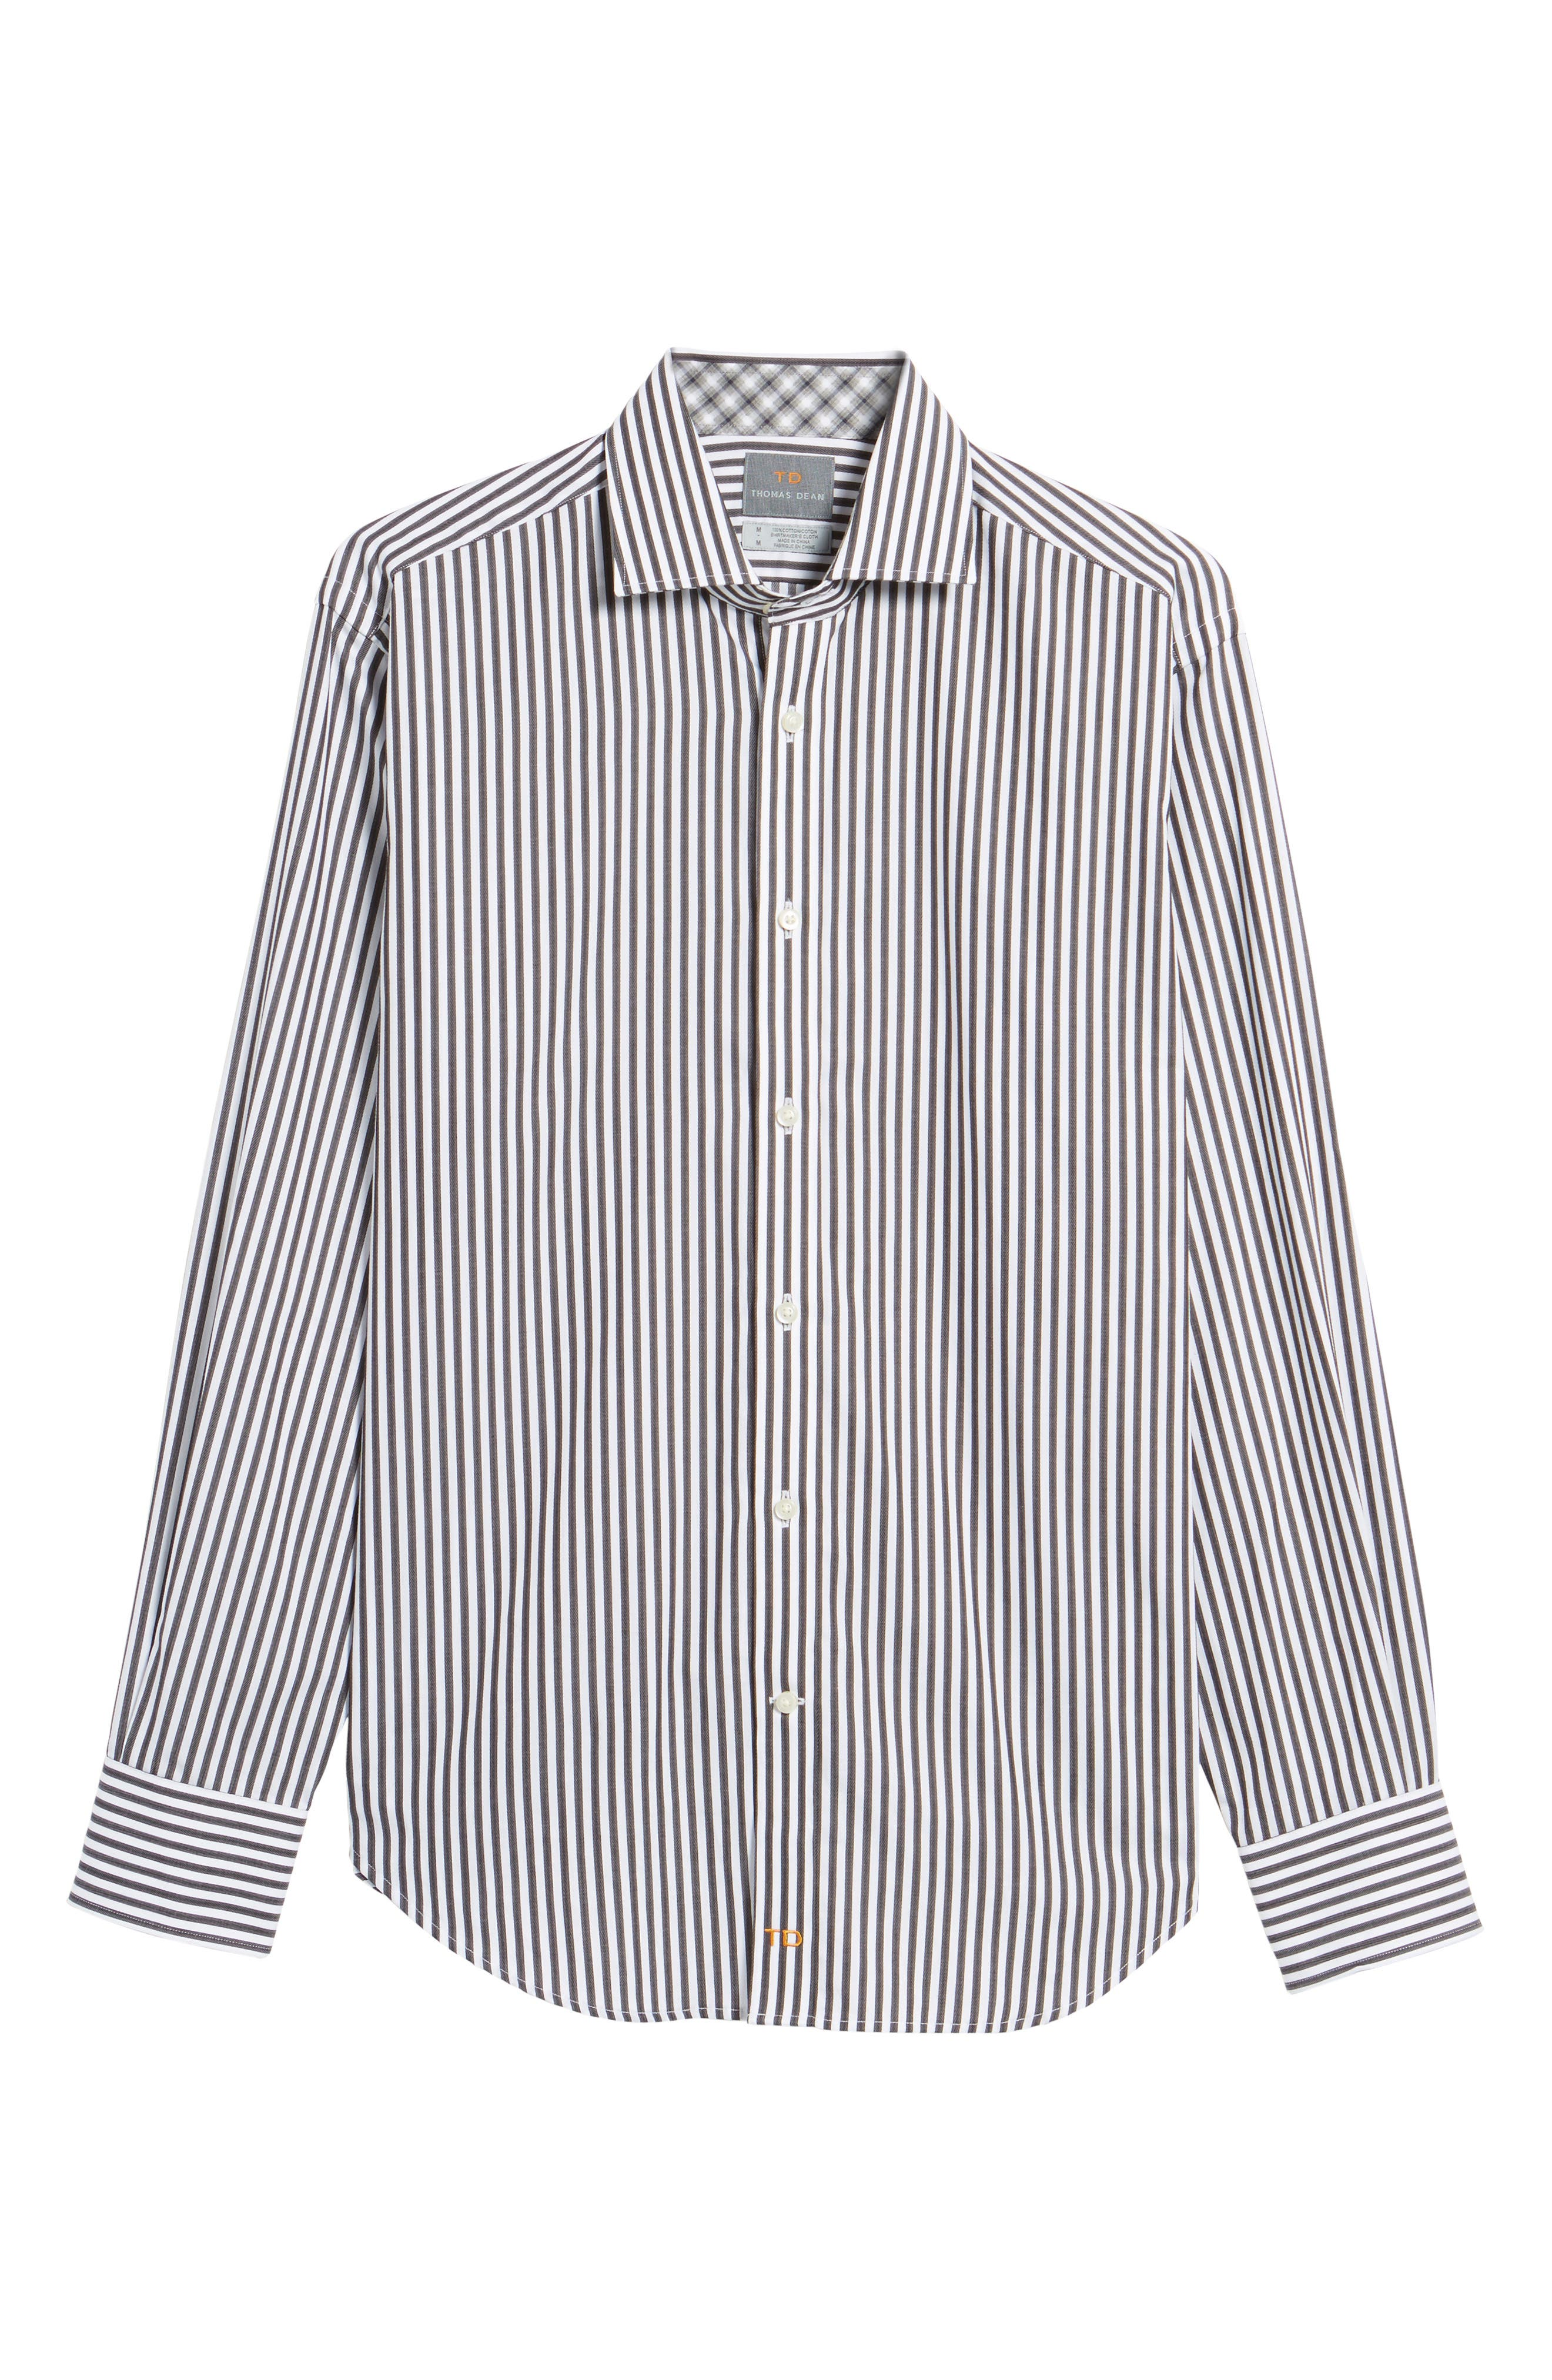 THOMAS DEAN,                             Regular Fit Stripe Herringbone Sport Shirt,                             Alternate thumbnail 6, color,                             021